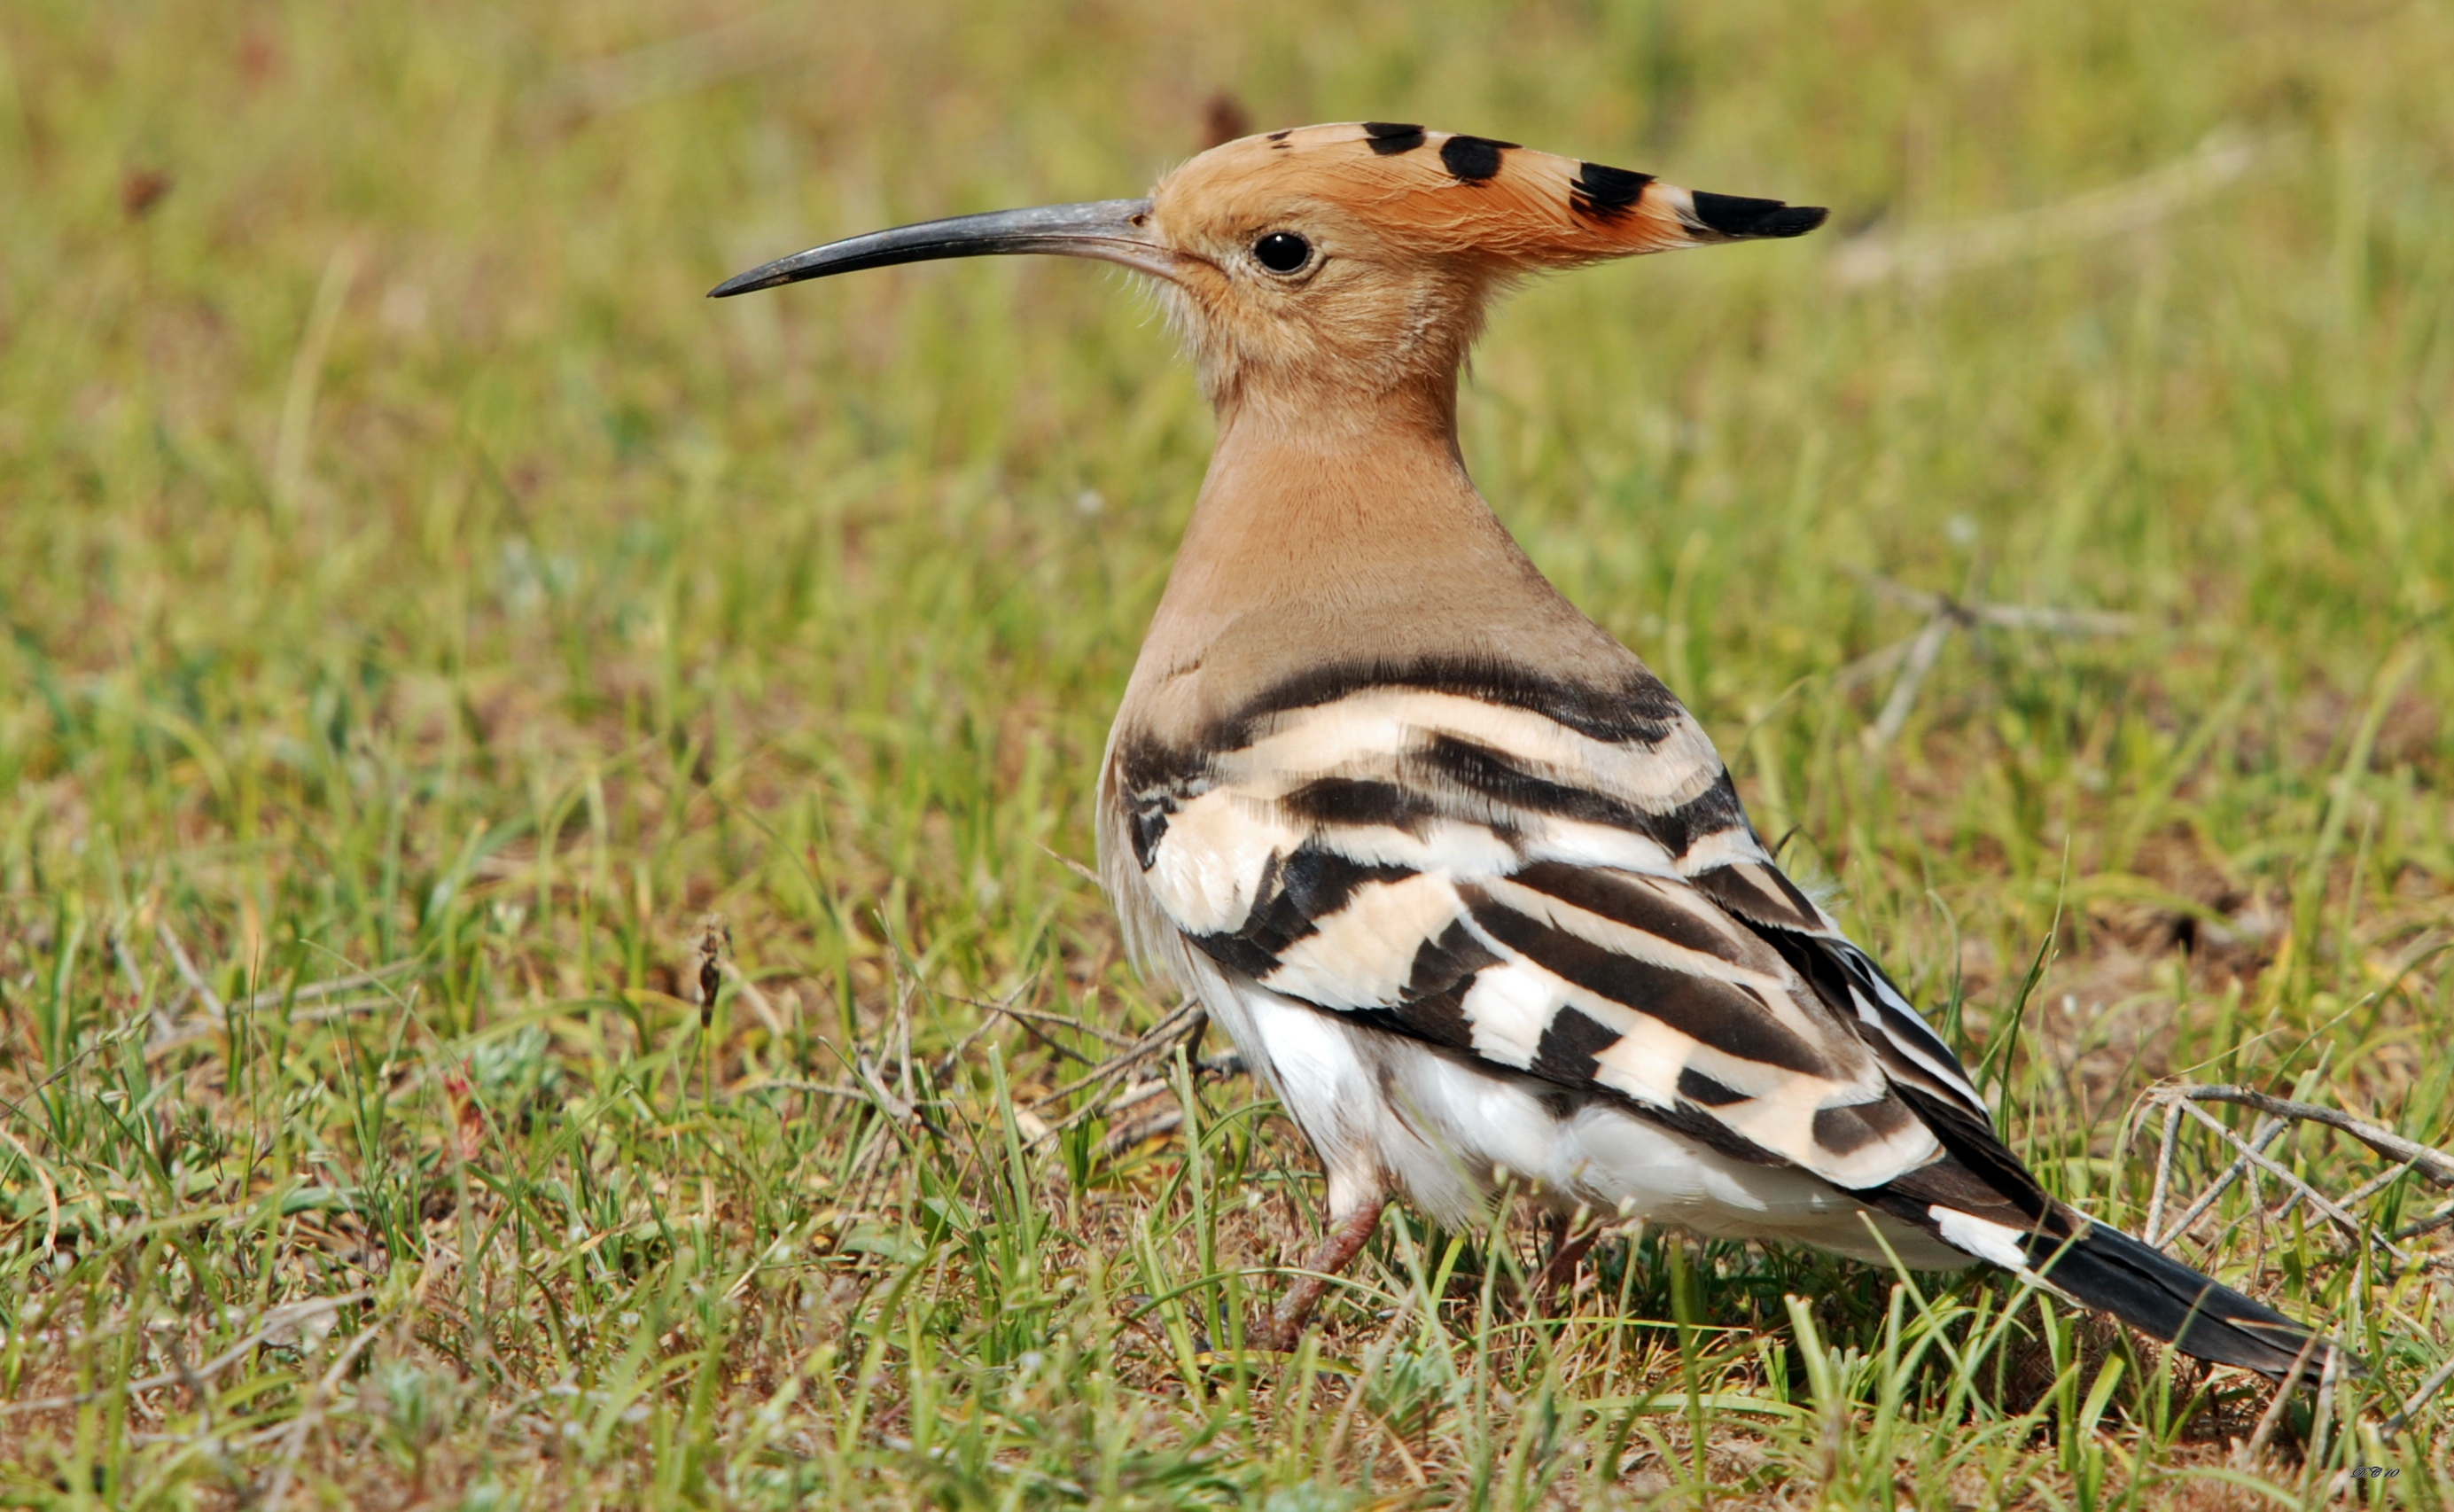 Eurasian Hoopoe photos and wallpapers. Collection of the